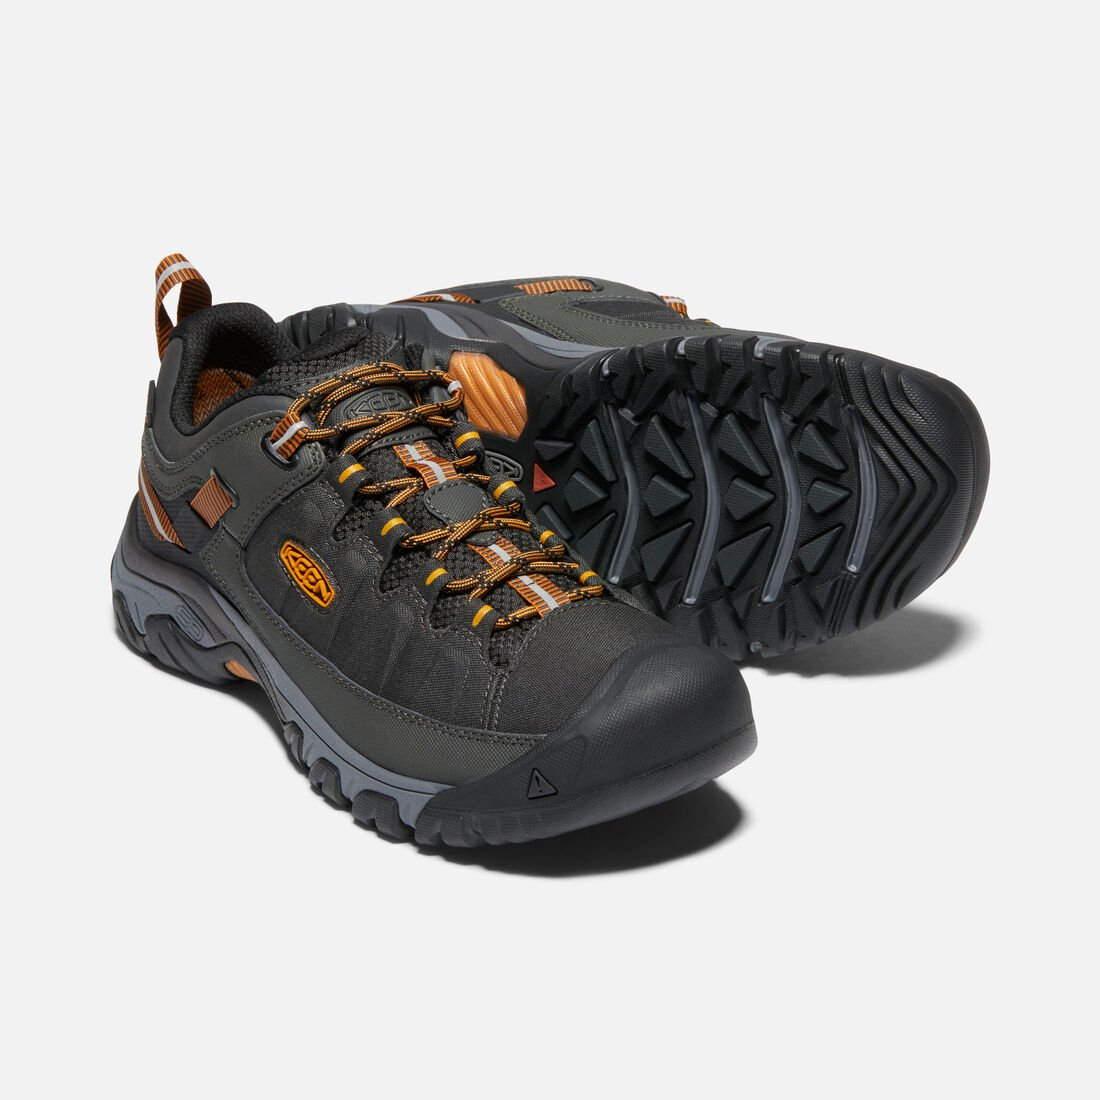 Keen men's Targhee EXP WP